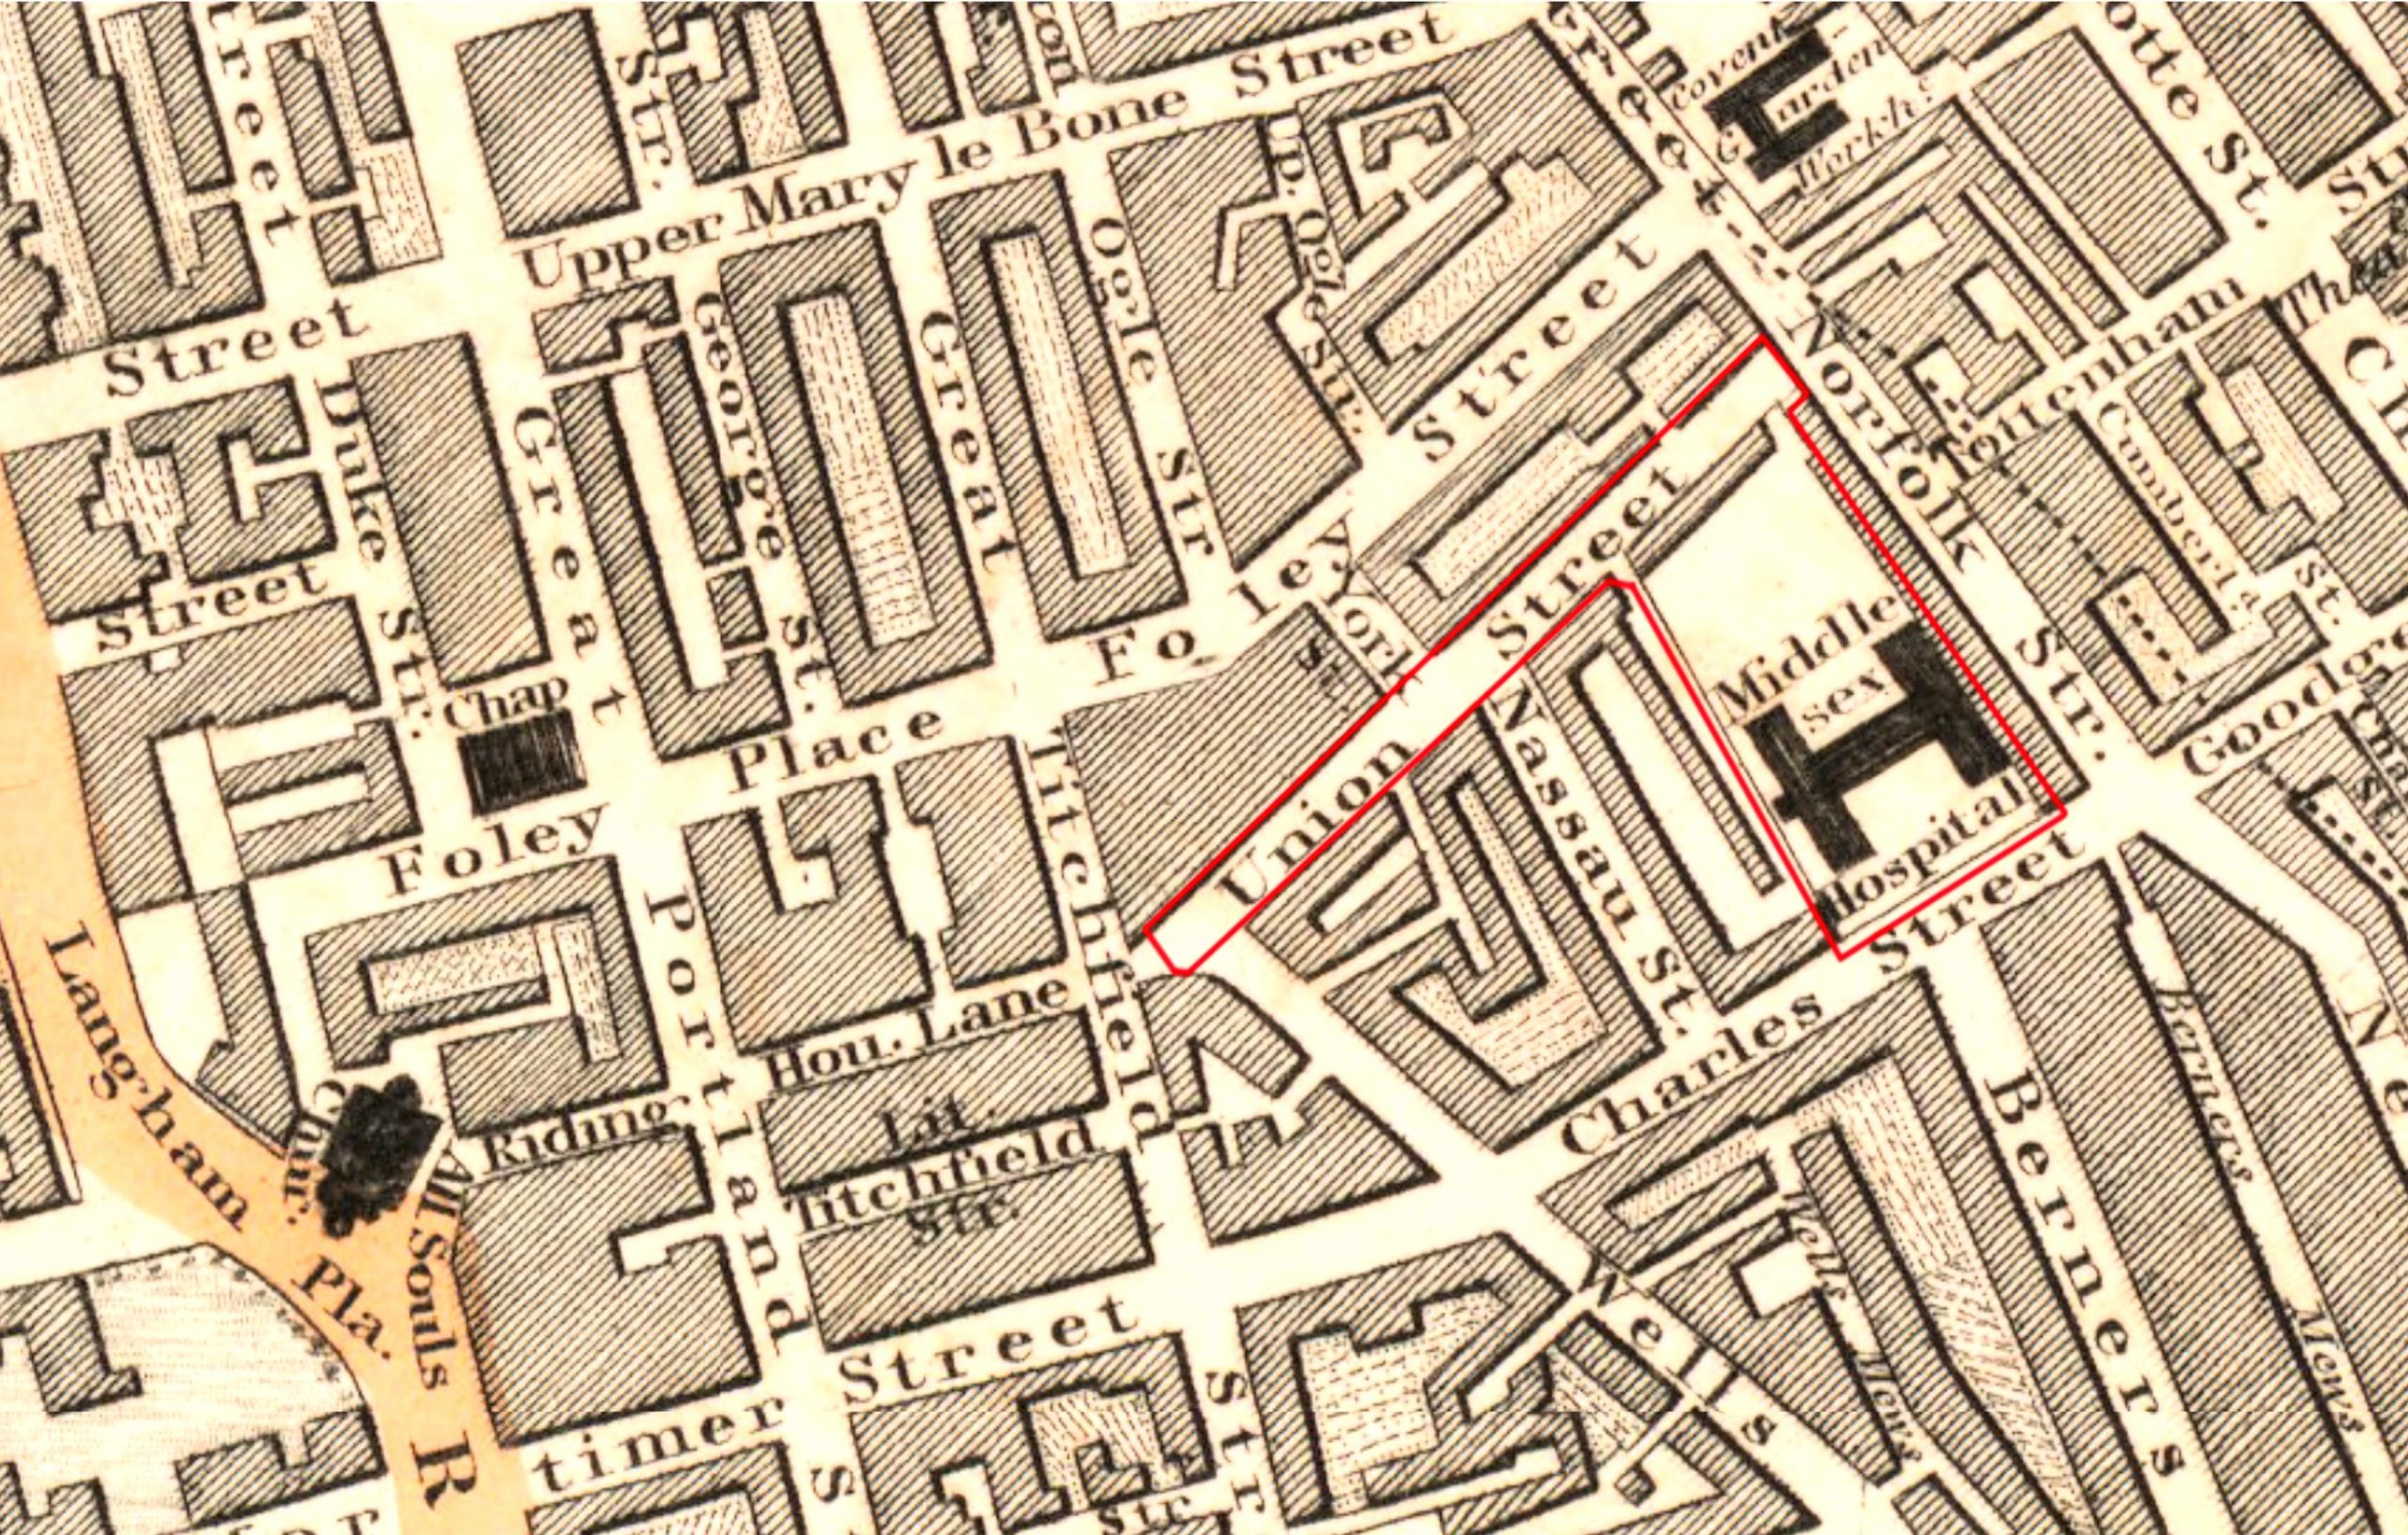 Middlesex Hospital and Union Street